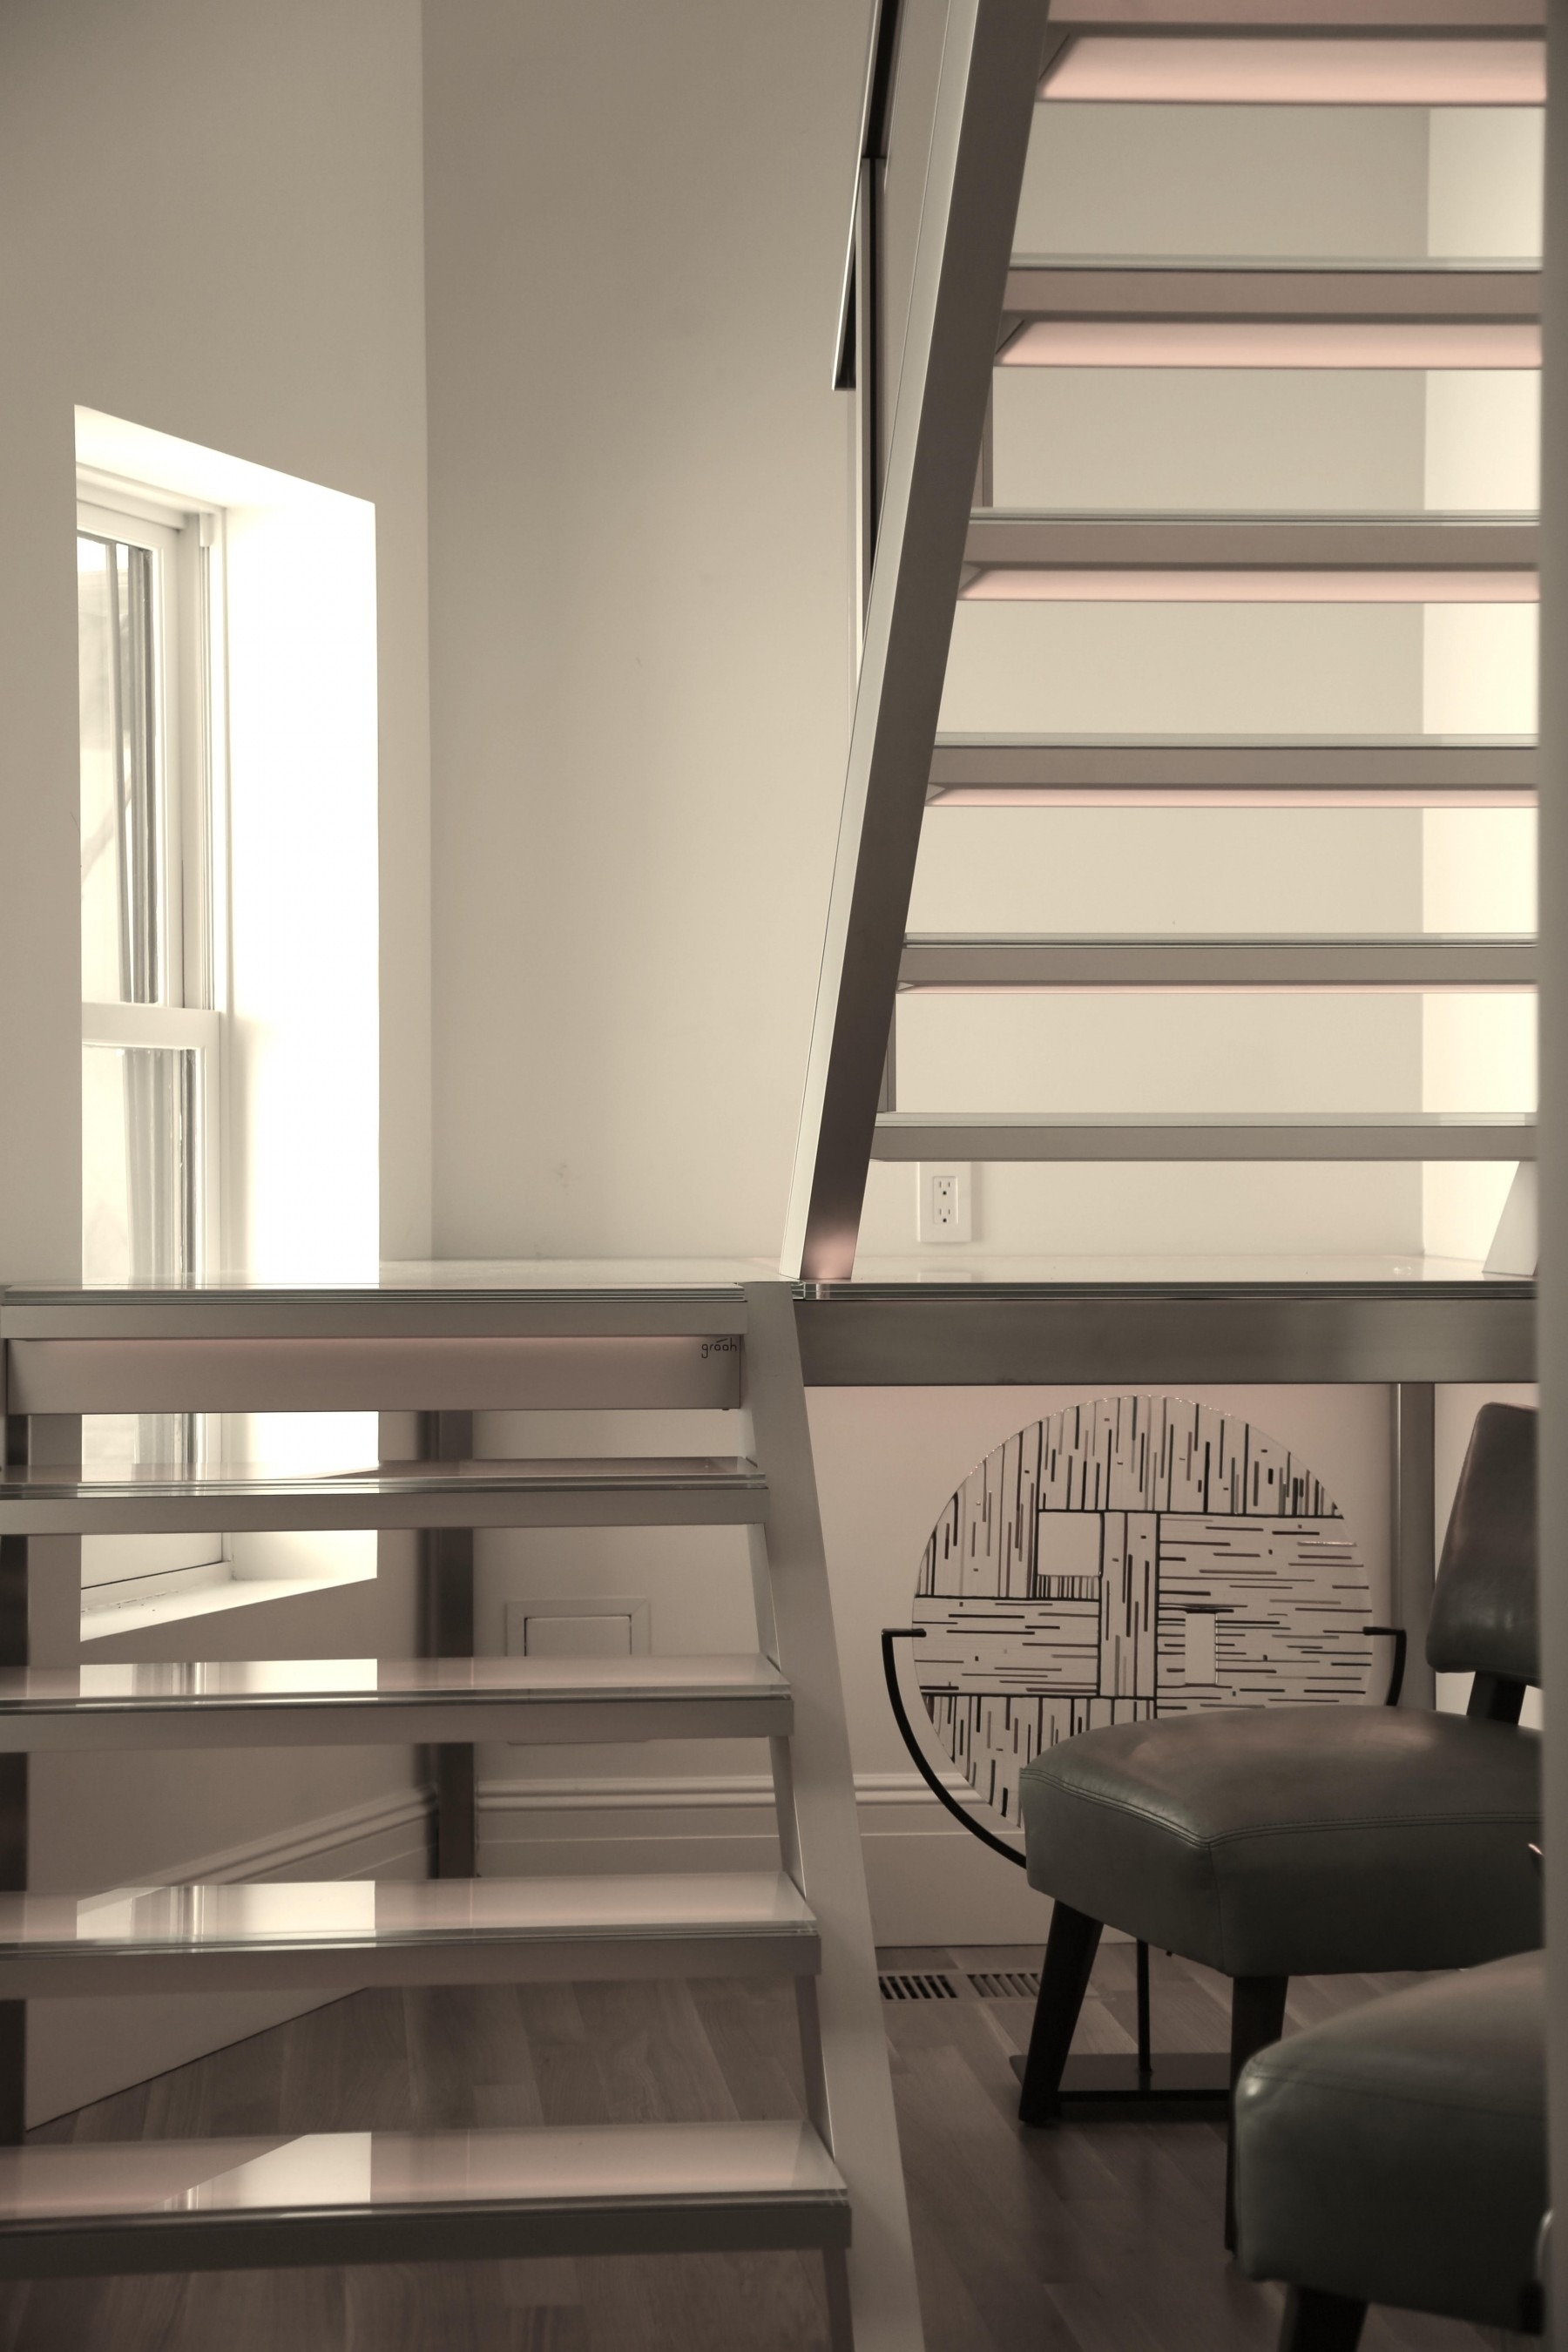 Spiral Staircase Alternatives For Your Nyc Duplex Renovation   Converting Spiral Staircase To Straight   Wood   House   Stair Case   U Shaped   Loft Conversion